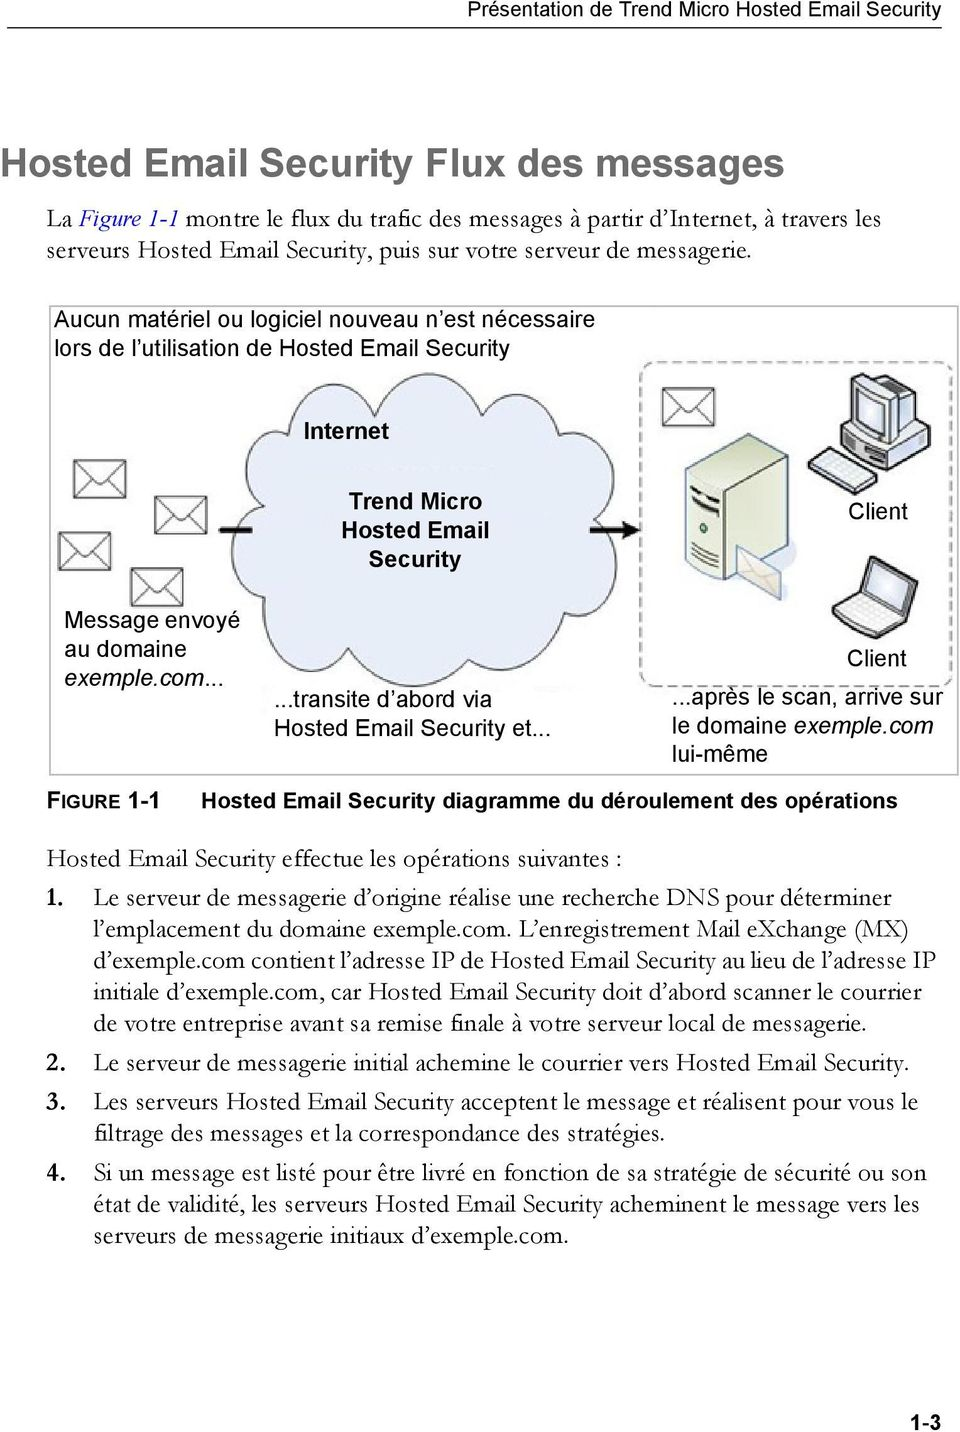 Aucun matériel ou logiciel nouveau n est nécessaire lors de l utilisation de Hosted Email Security Internet Trend Micro Hosted Email Security Client Message envoyé au domaine exemple.com.